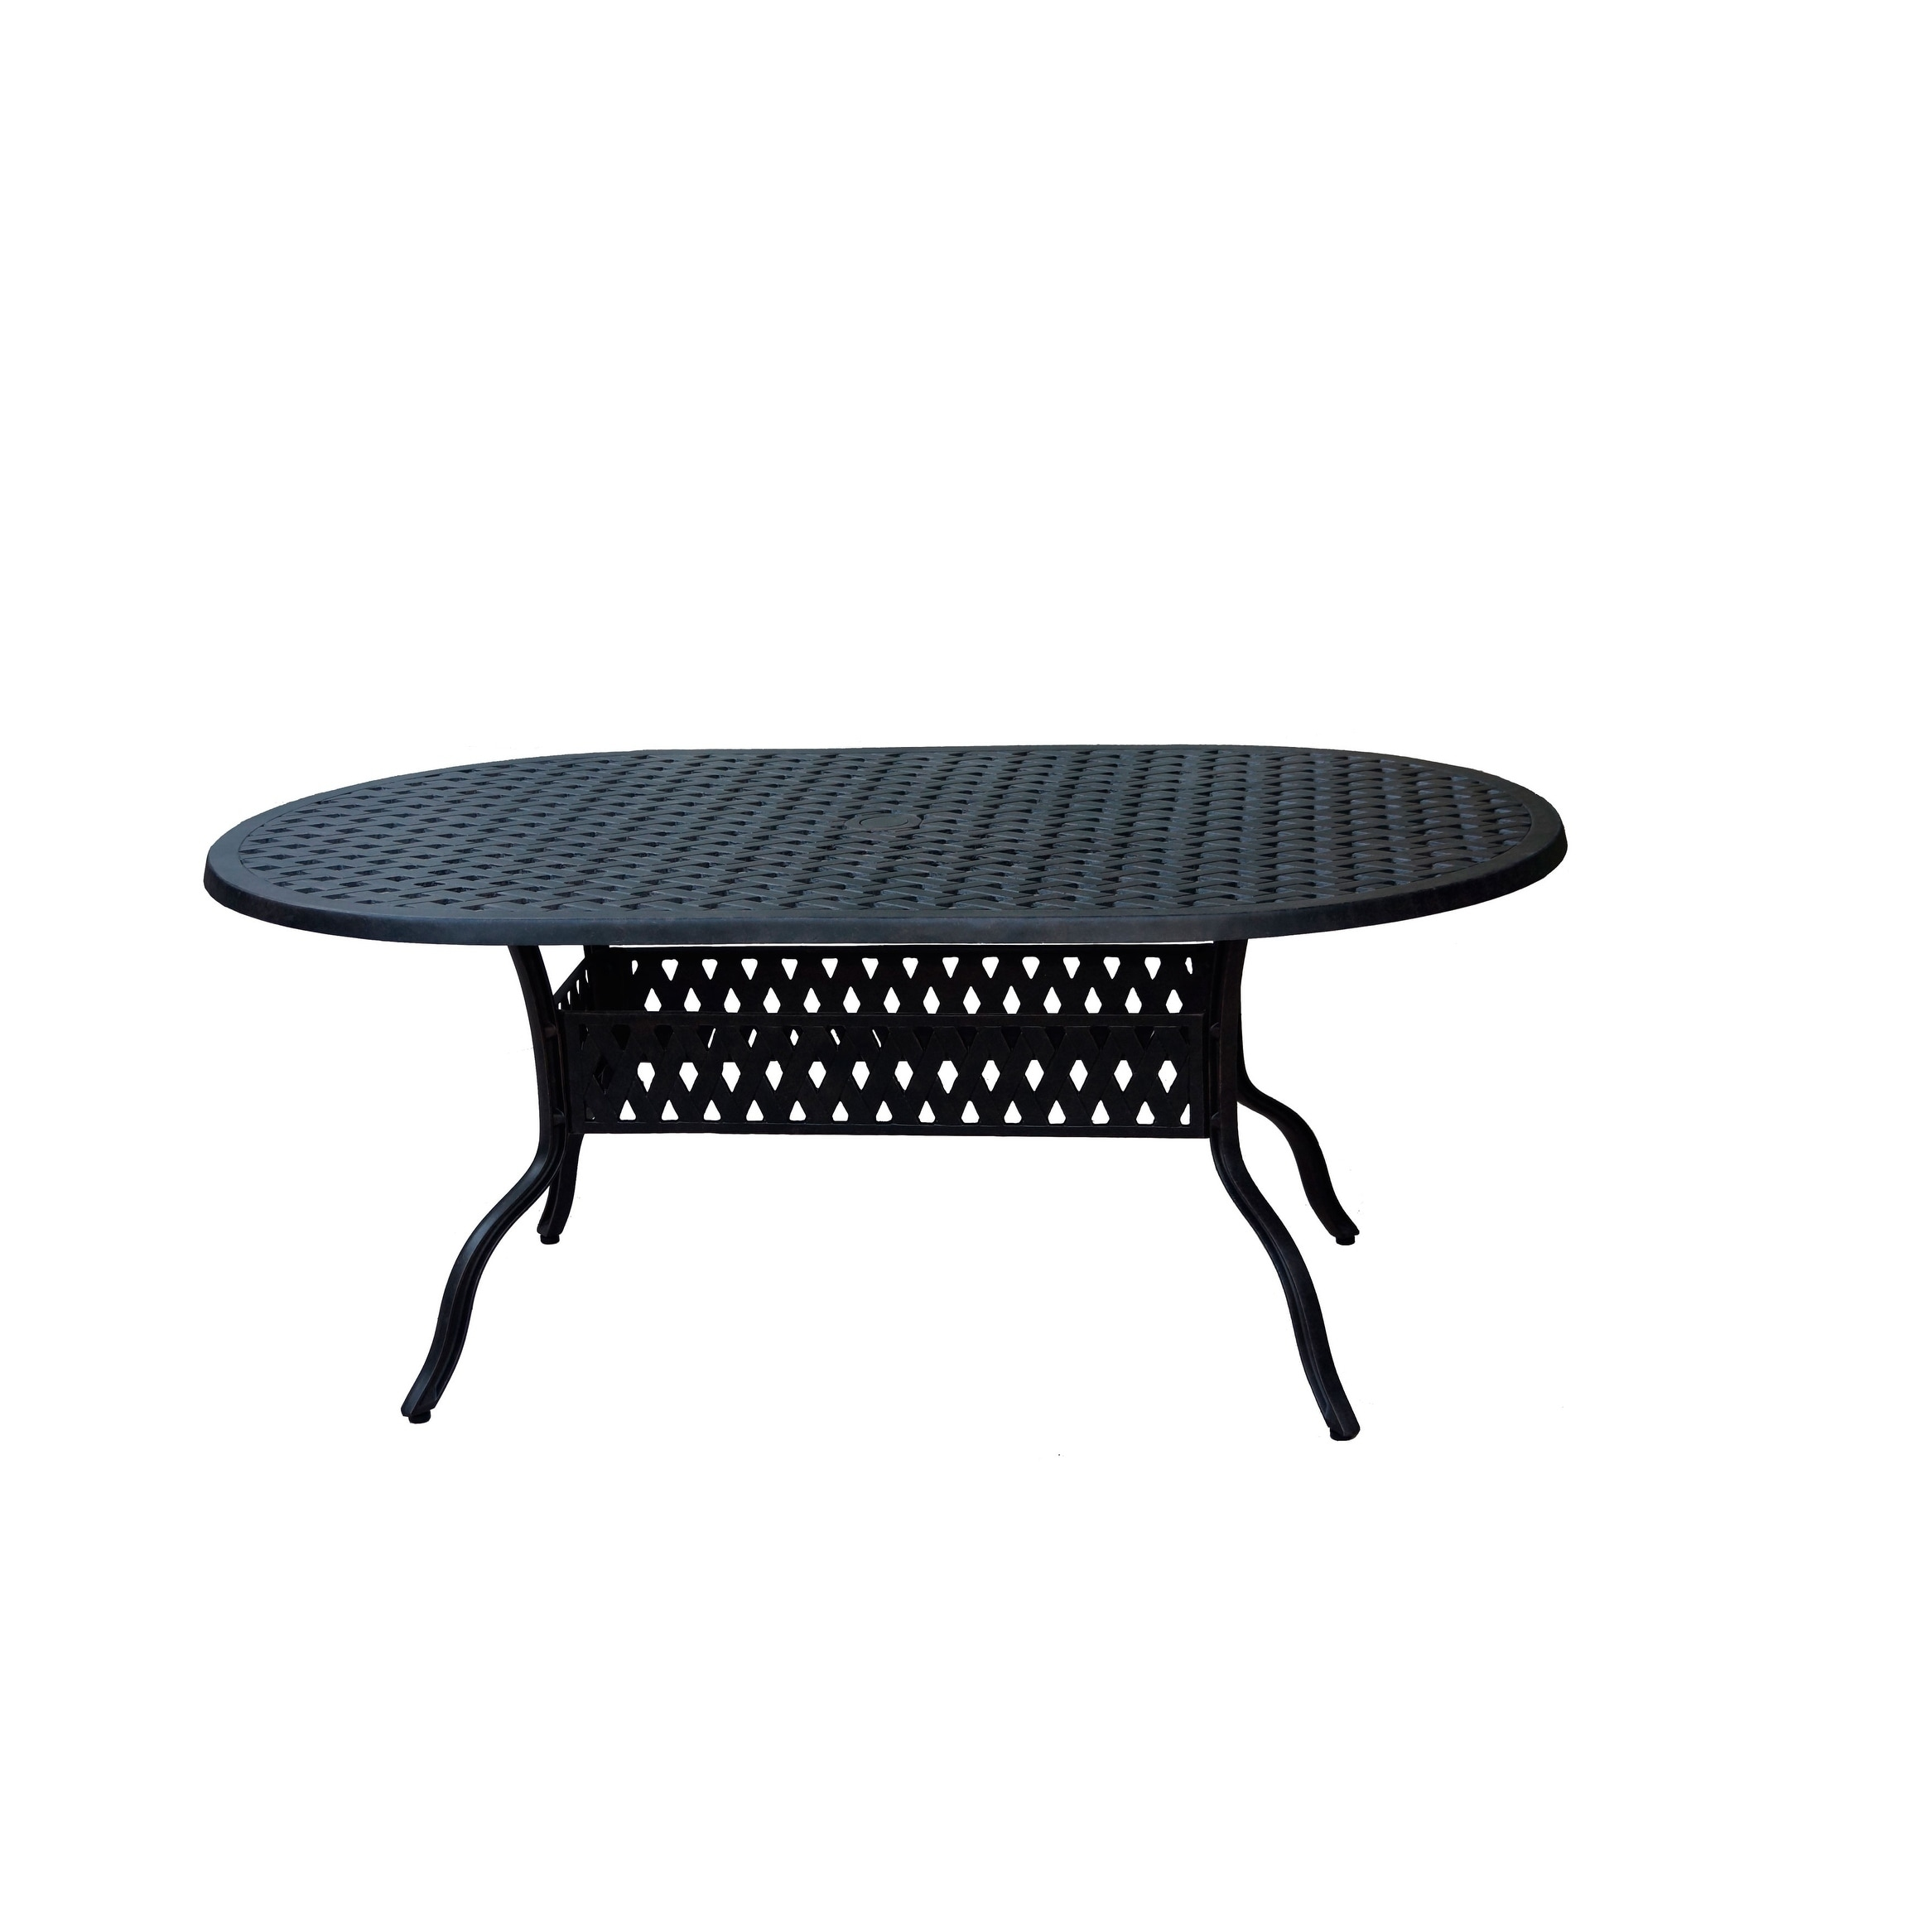 expandable overstock christopher oval home dining knight patio outdoor shipping table island stock today free aluminum garden by product